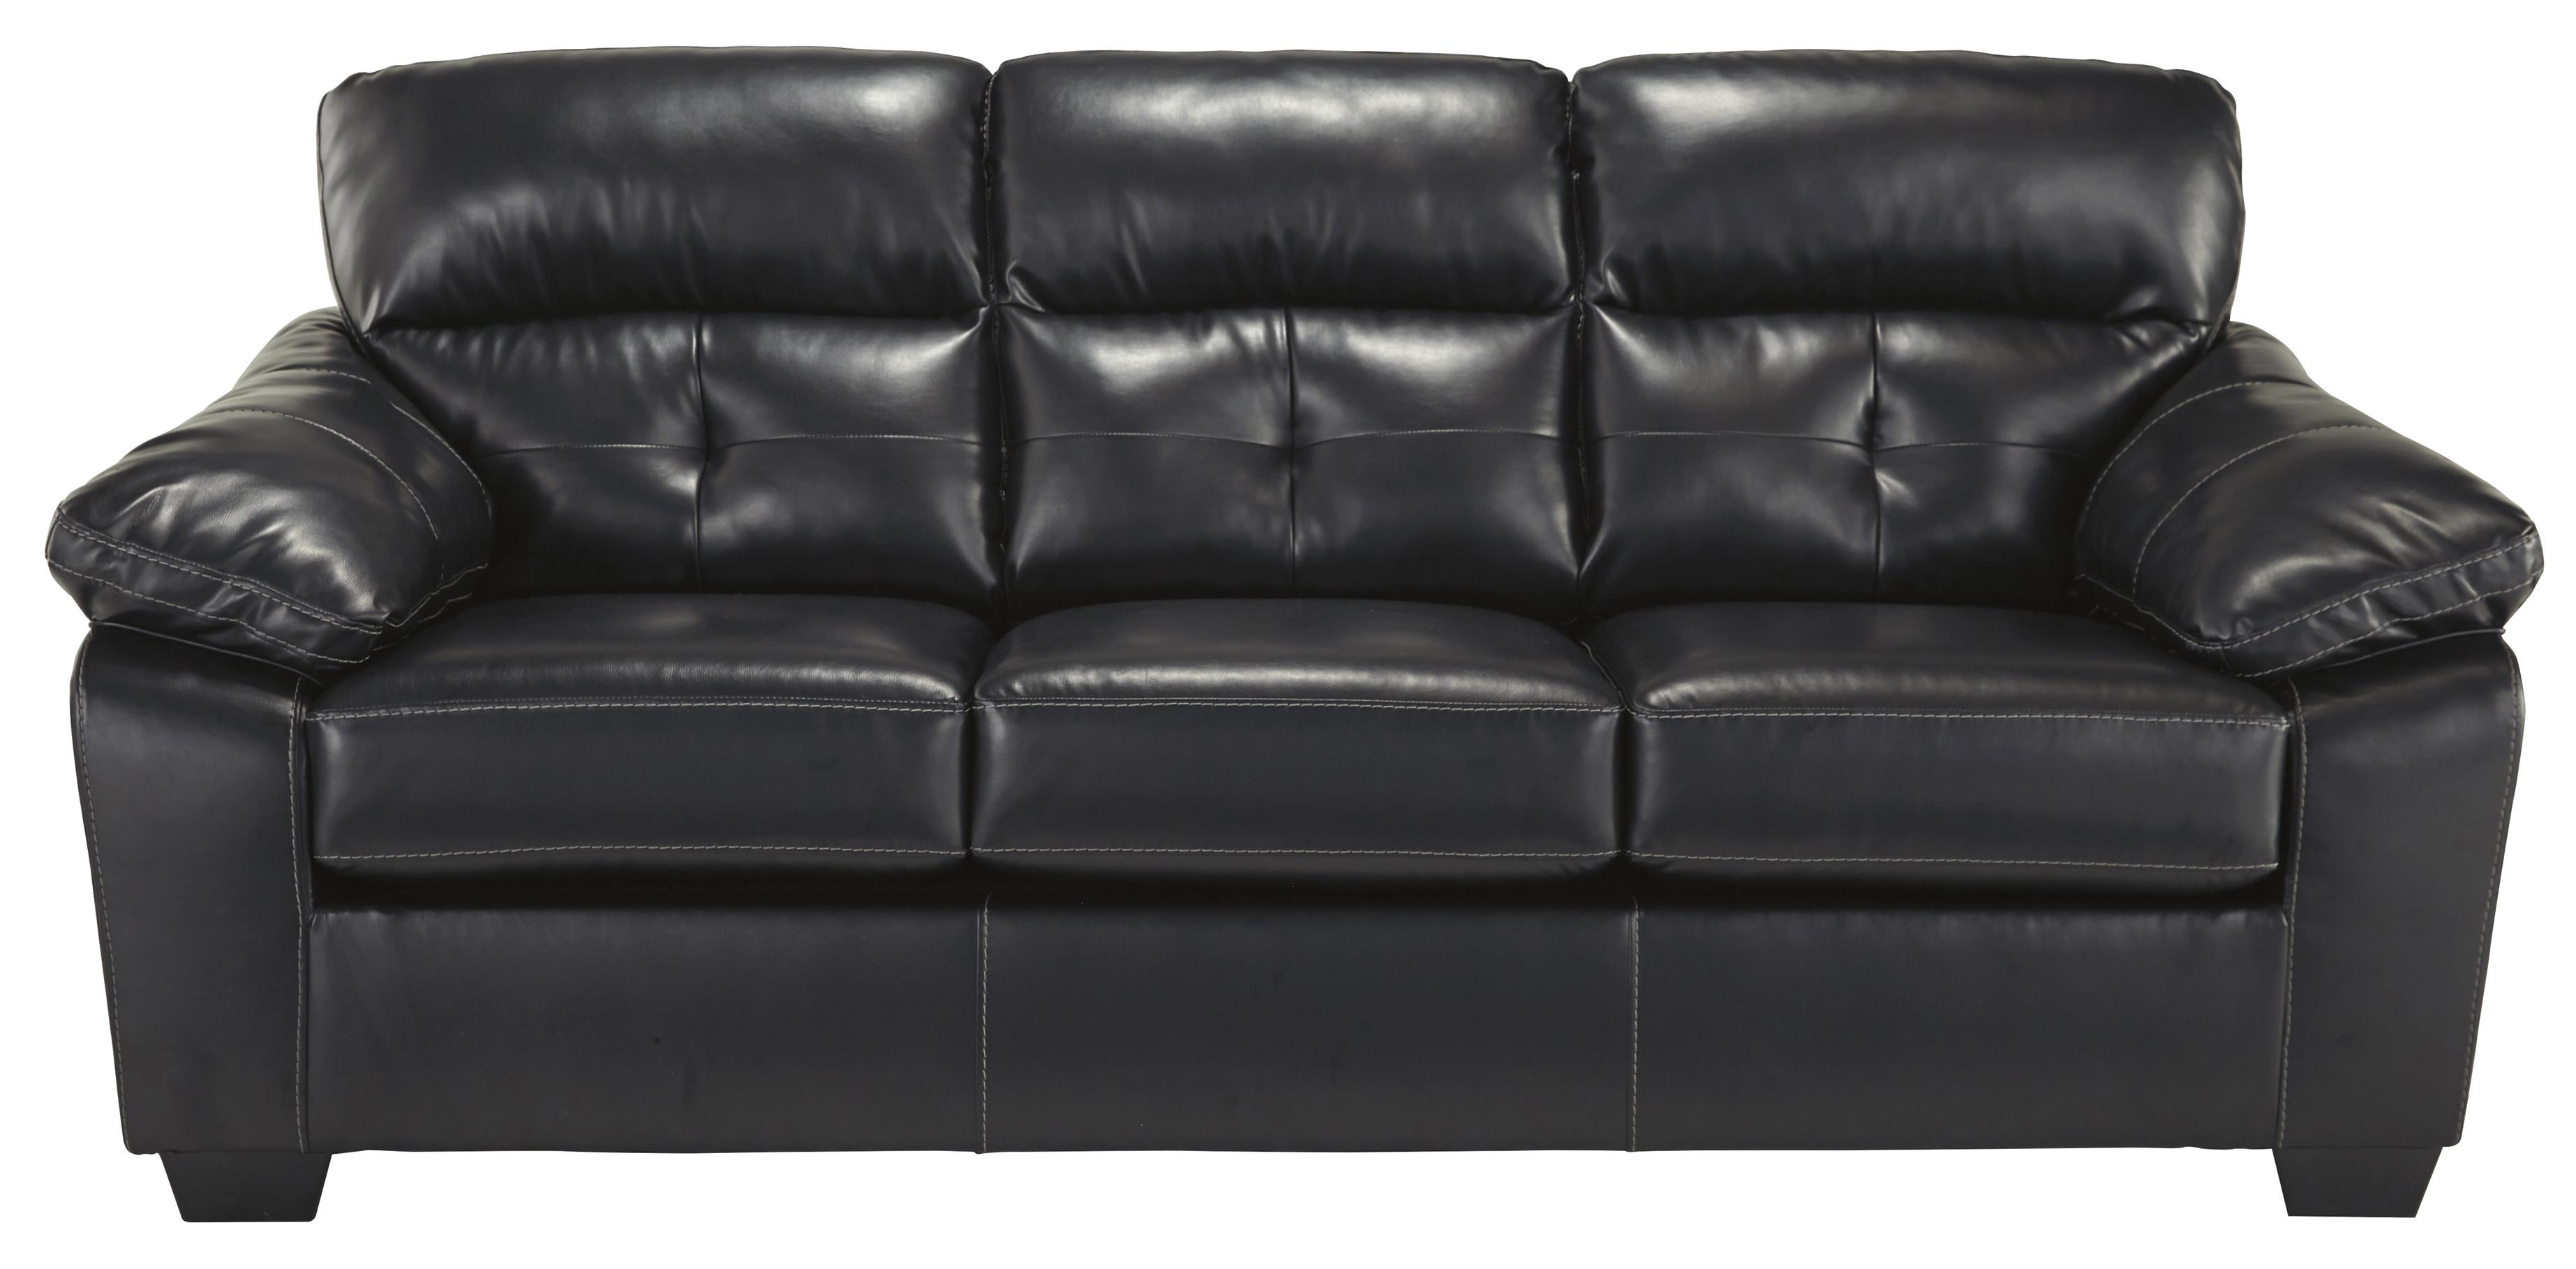 Benchcraft Bastrop DuraBlend - Midnight Sofa - Item Number: 4460138